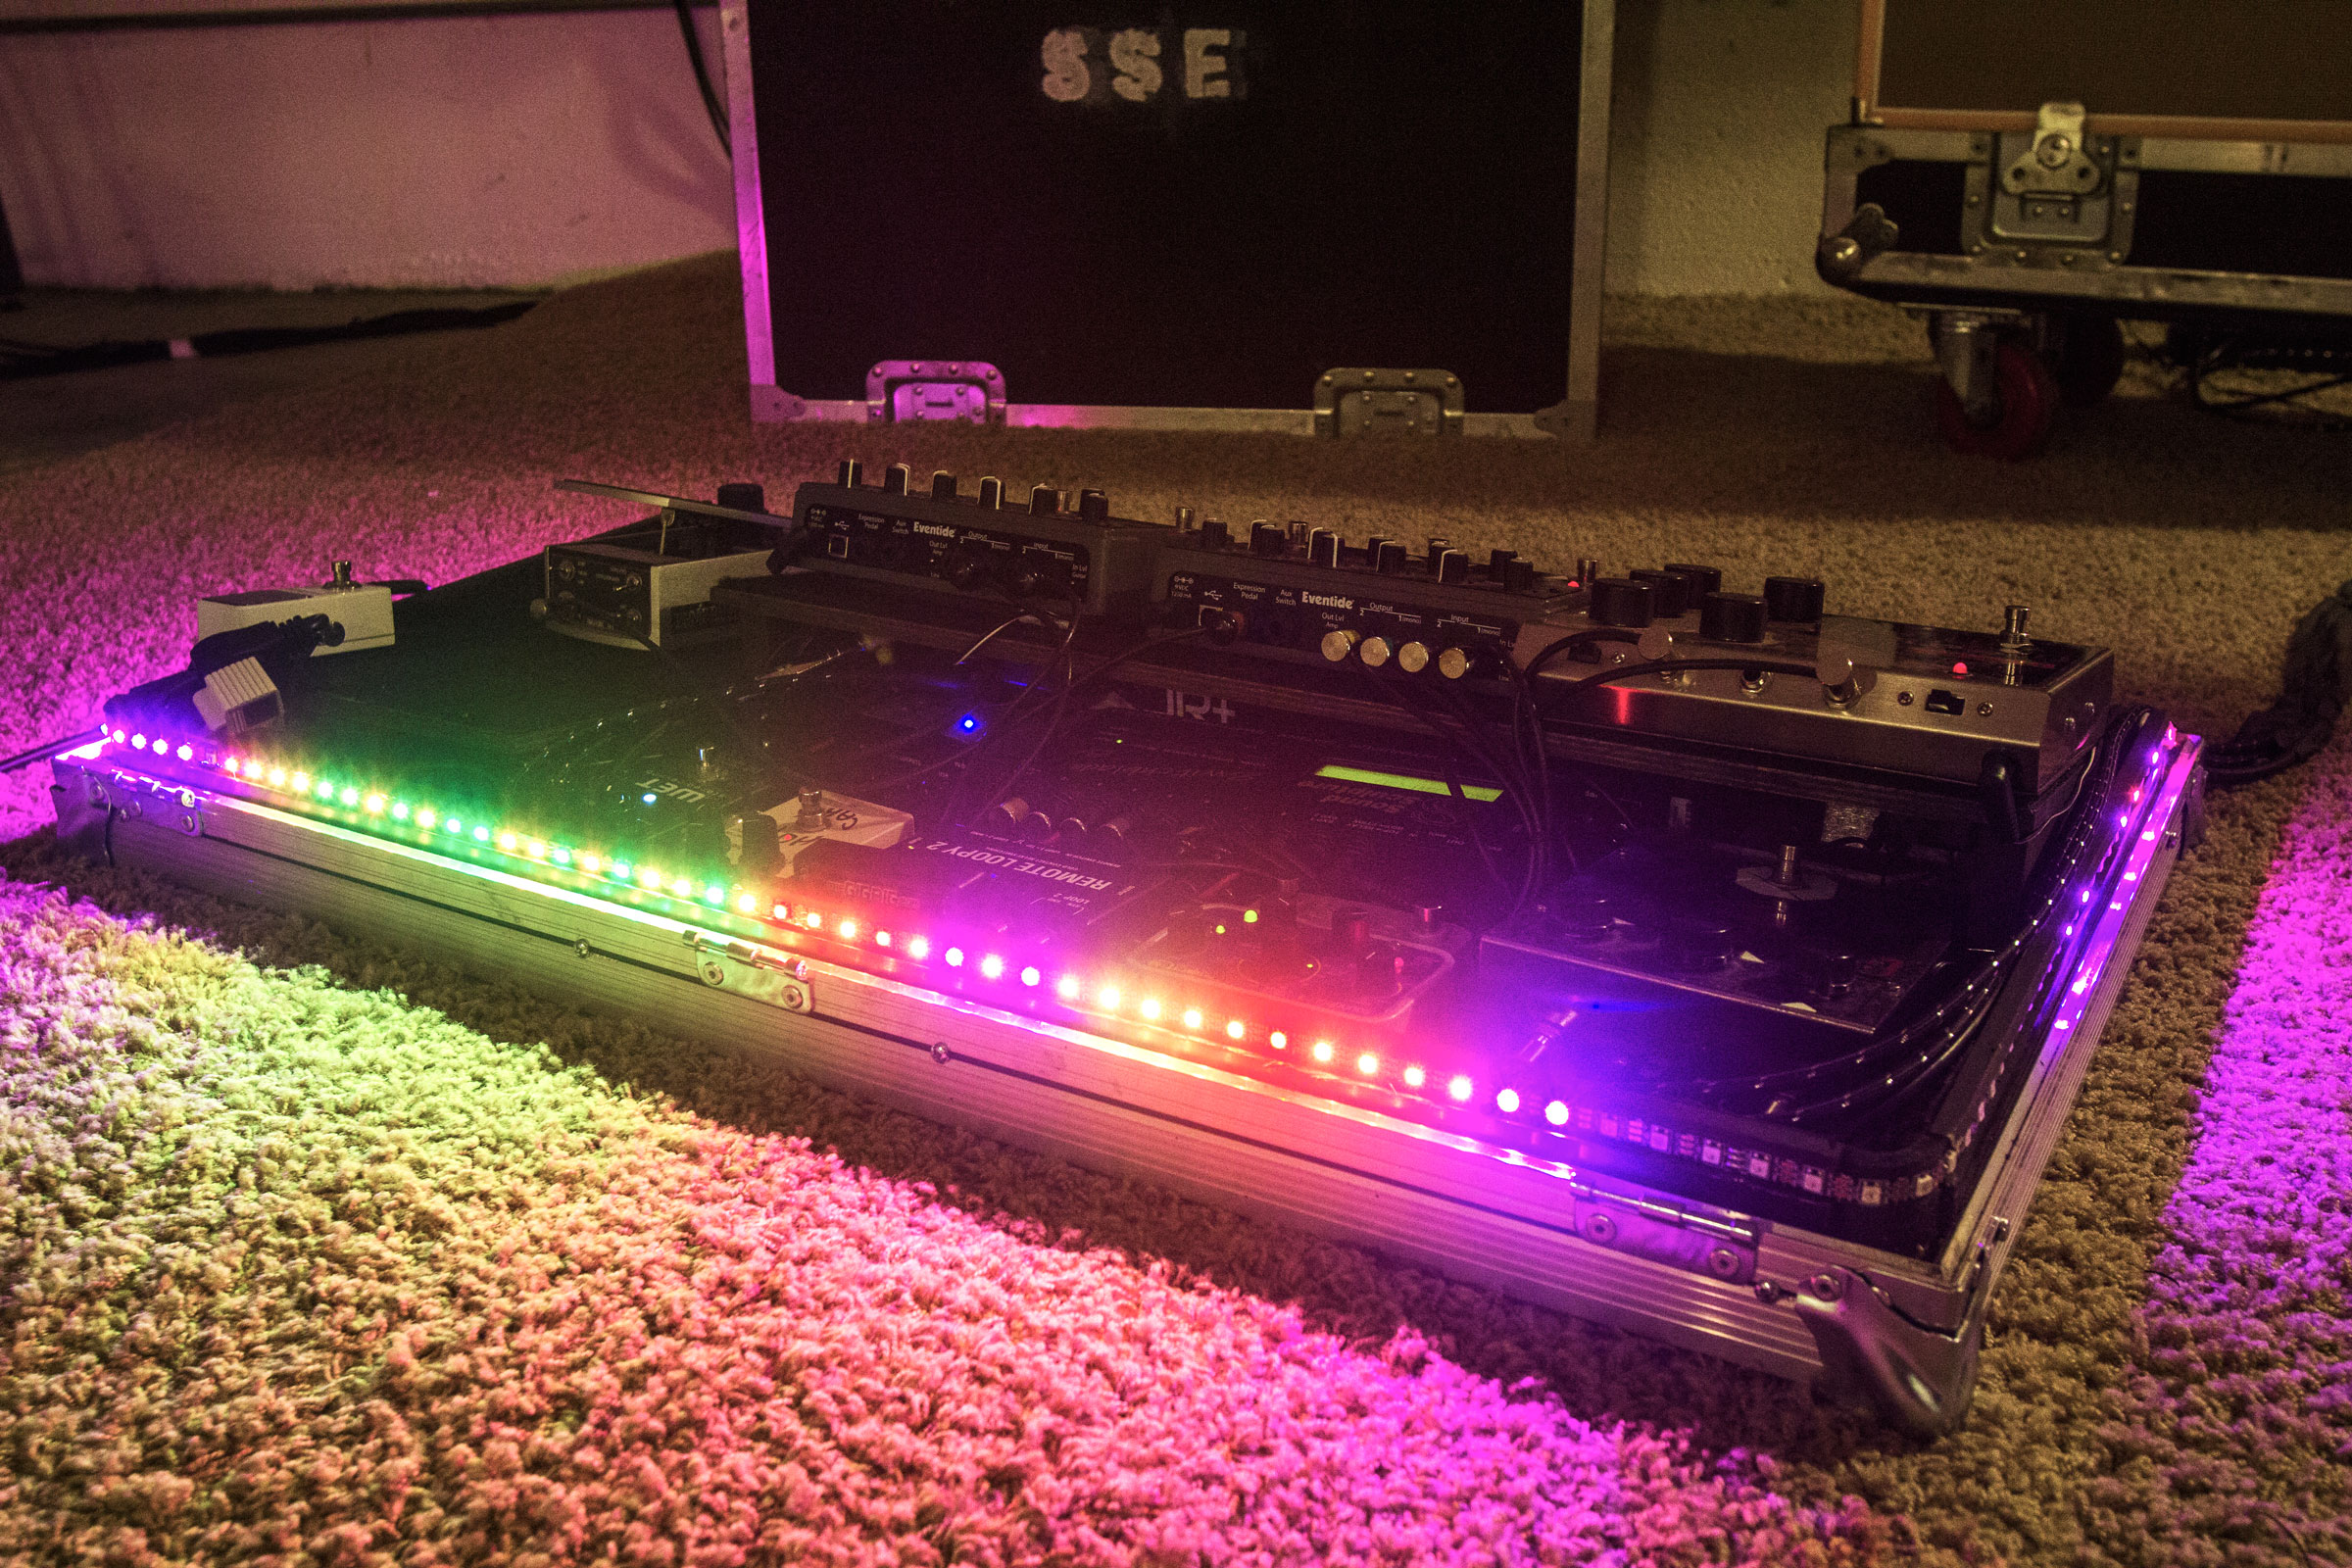 AudioLux Sound-Reactive LED Light System installed in a pedalboard